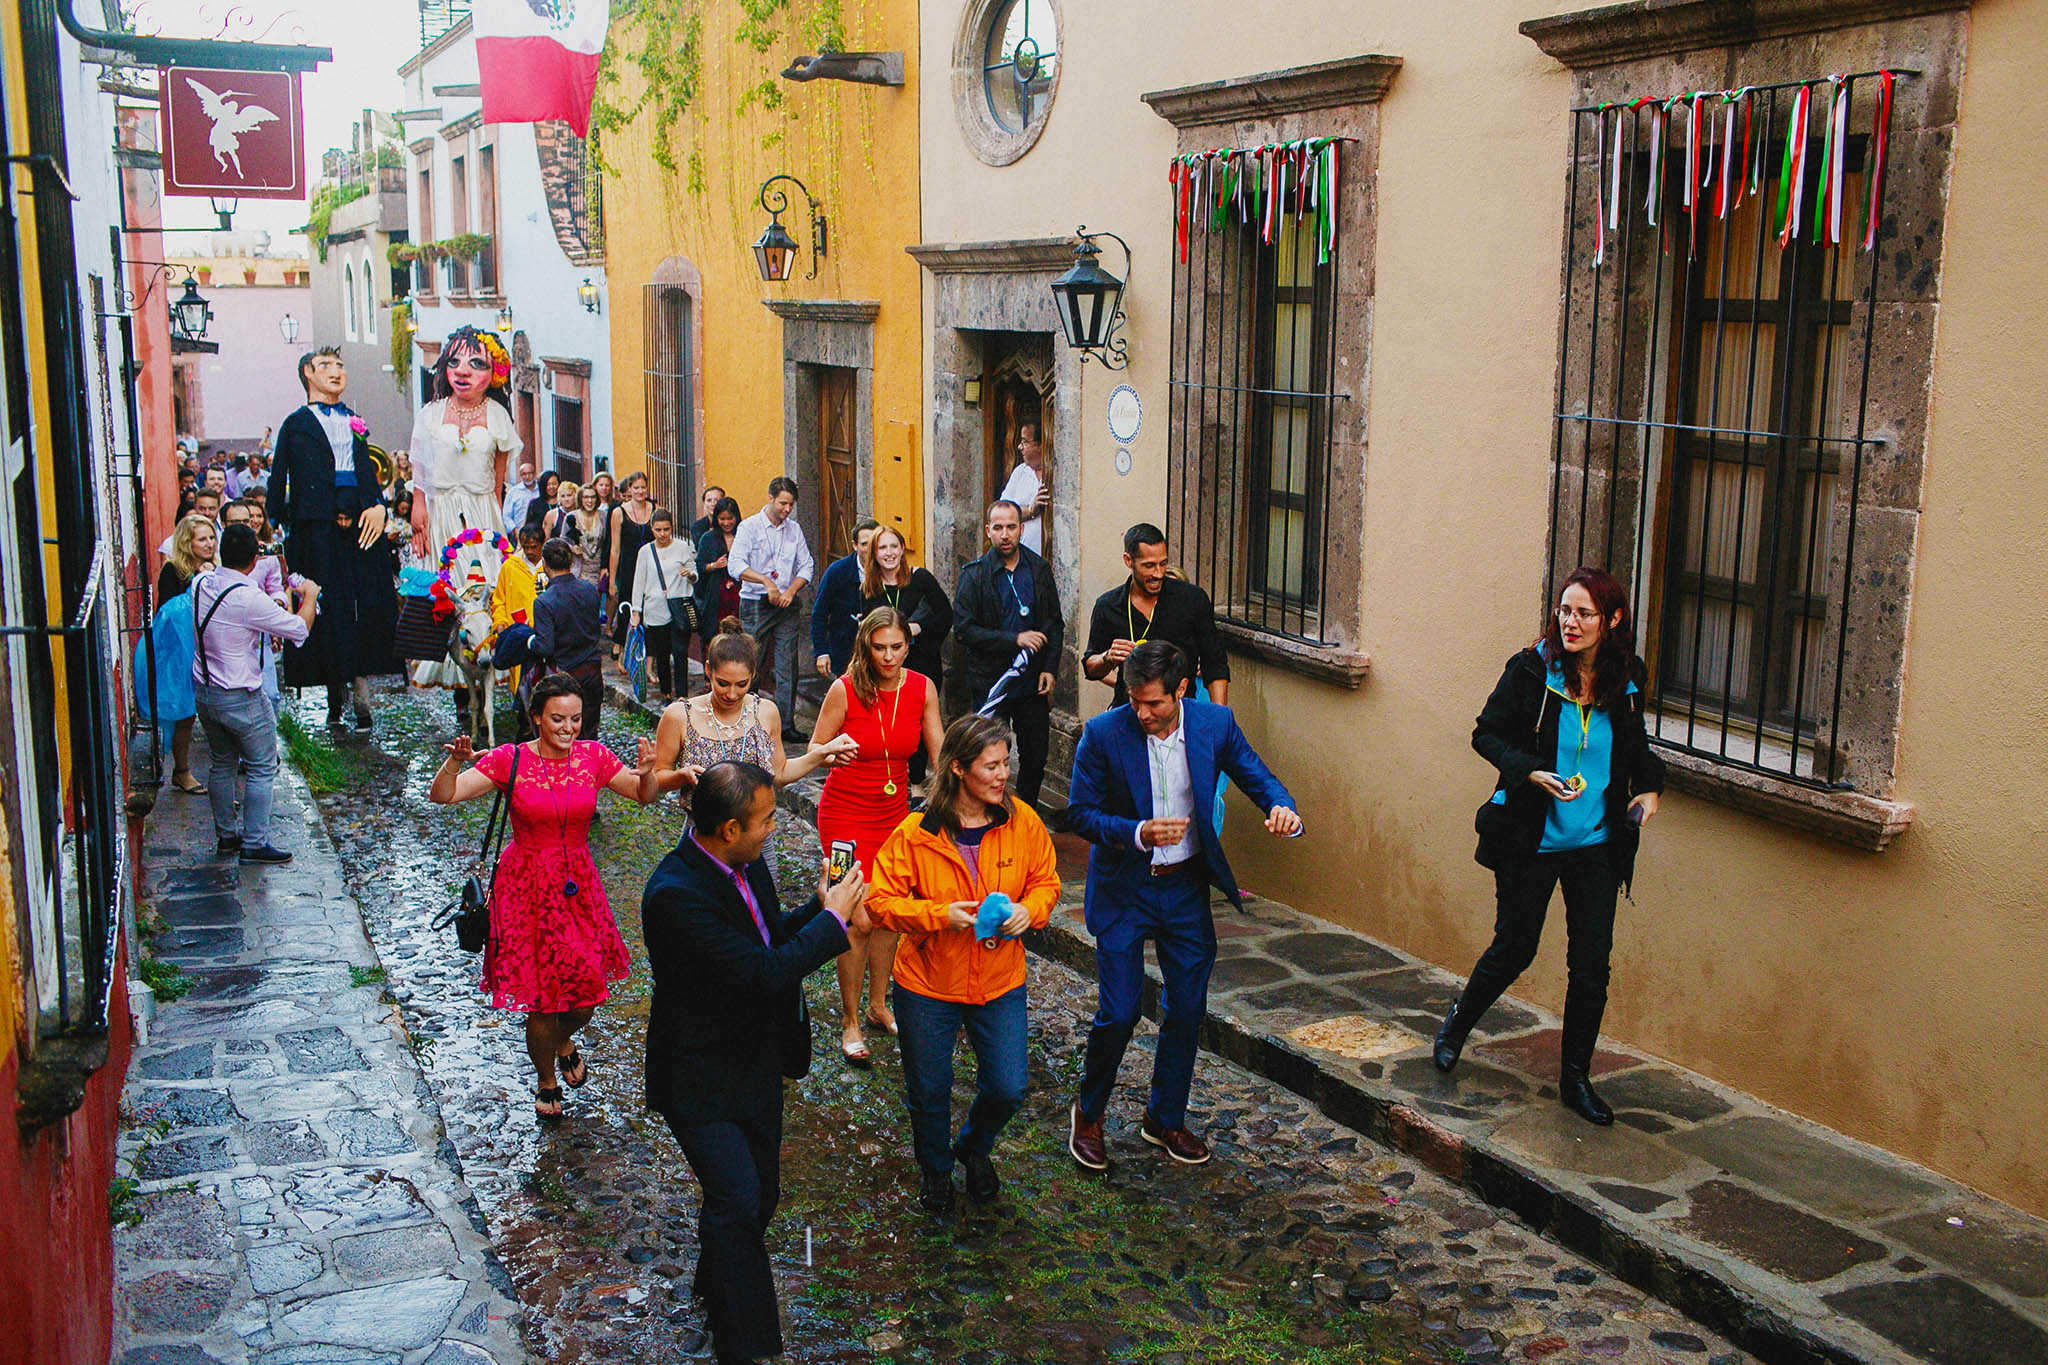 San-miguel-de-allende-wedding14